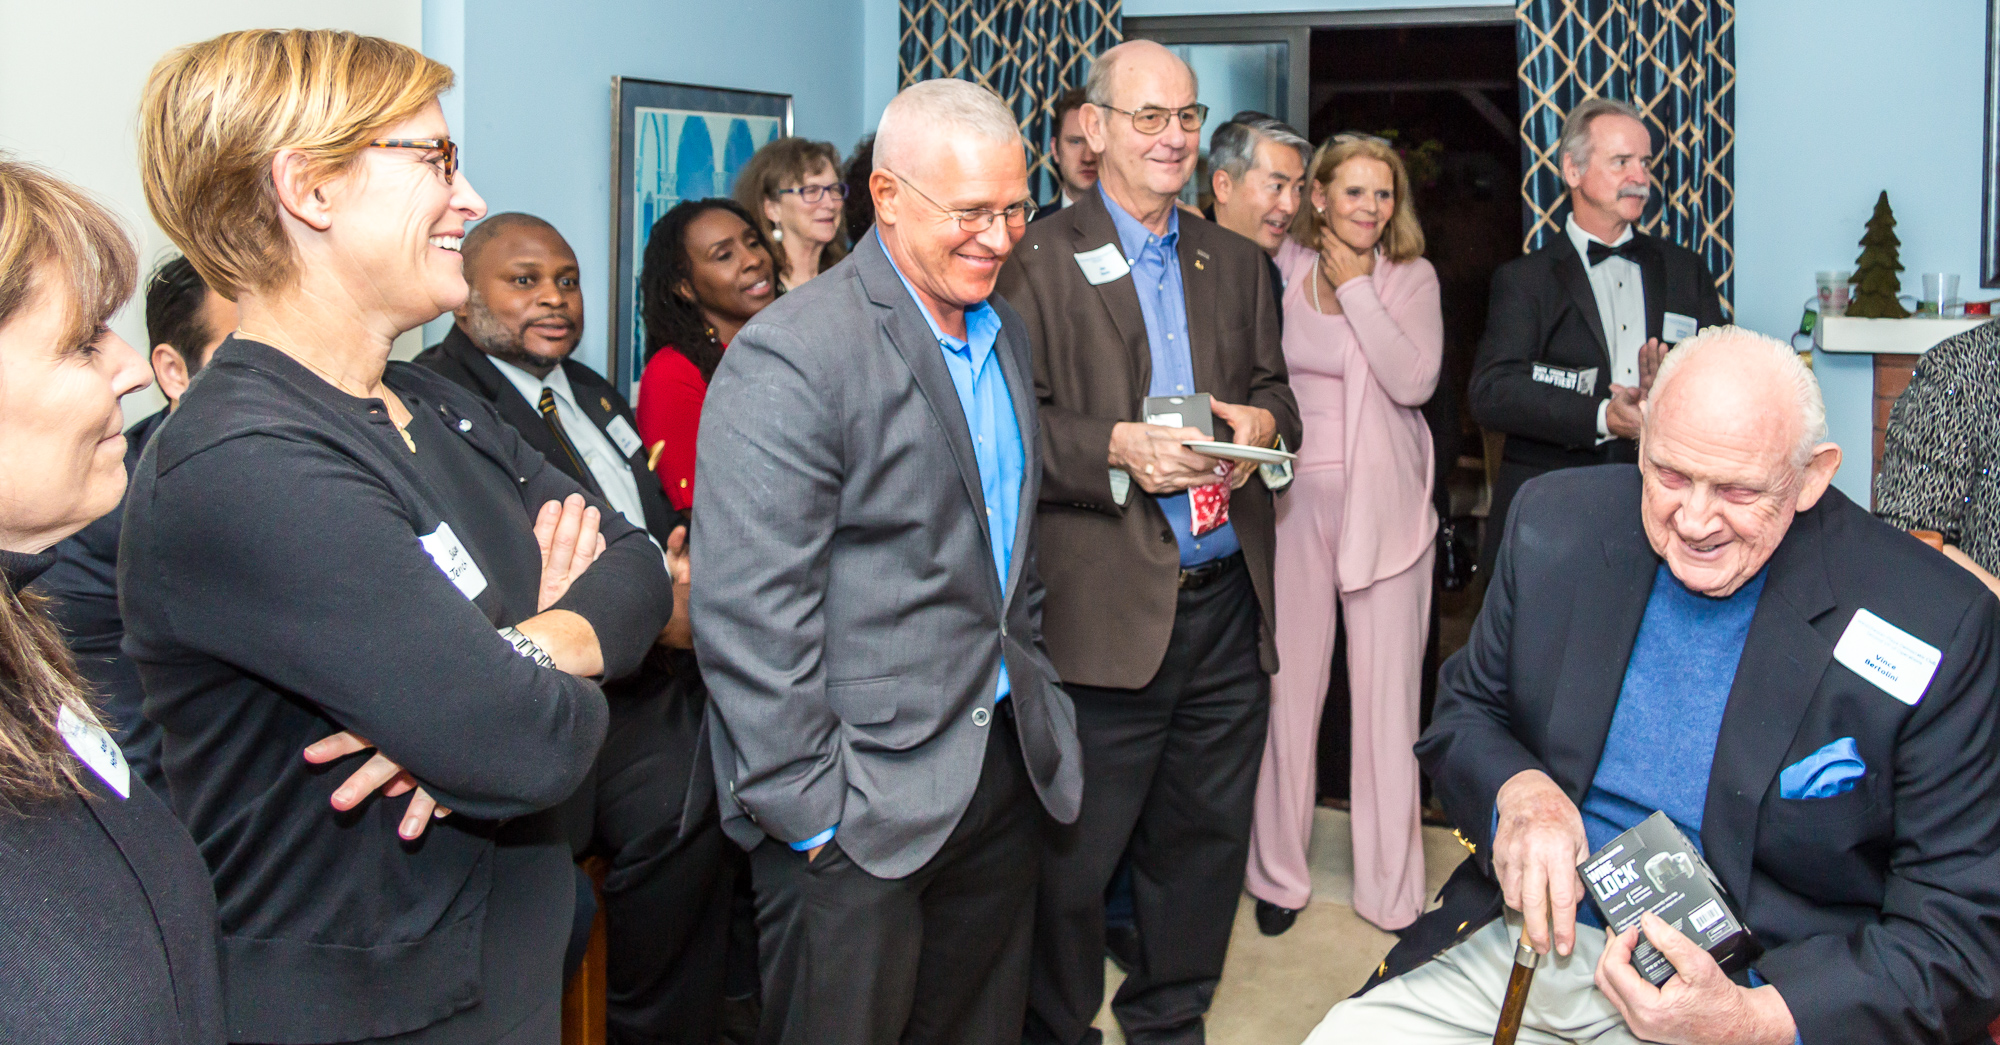 Westchester-Playa Democratic Club Holiday Party 2015 -29.jpg